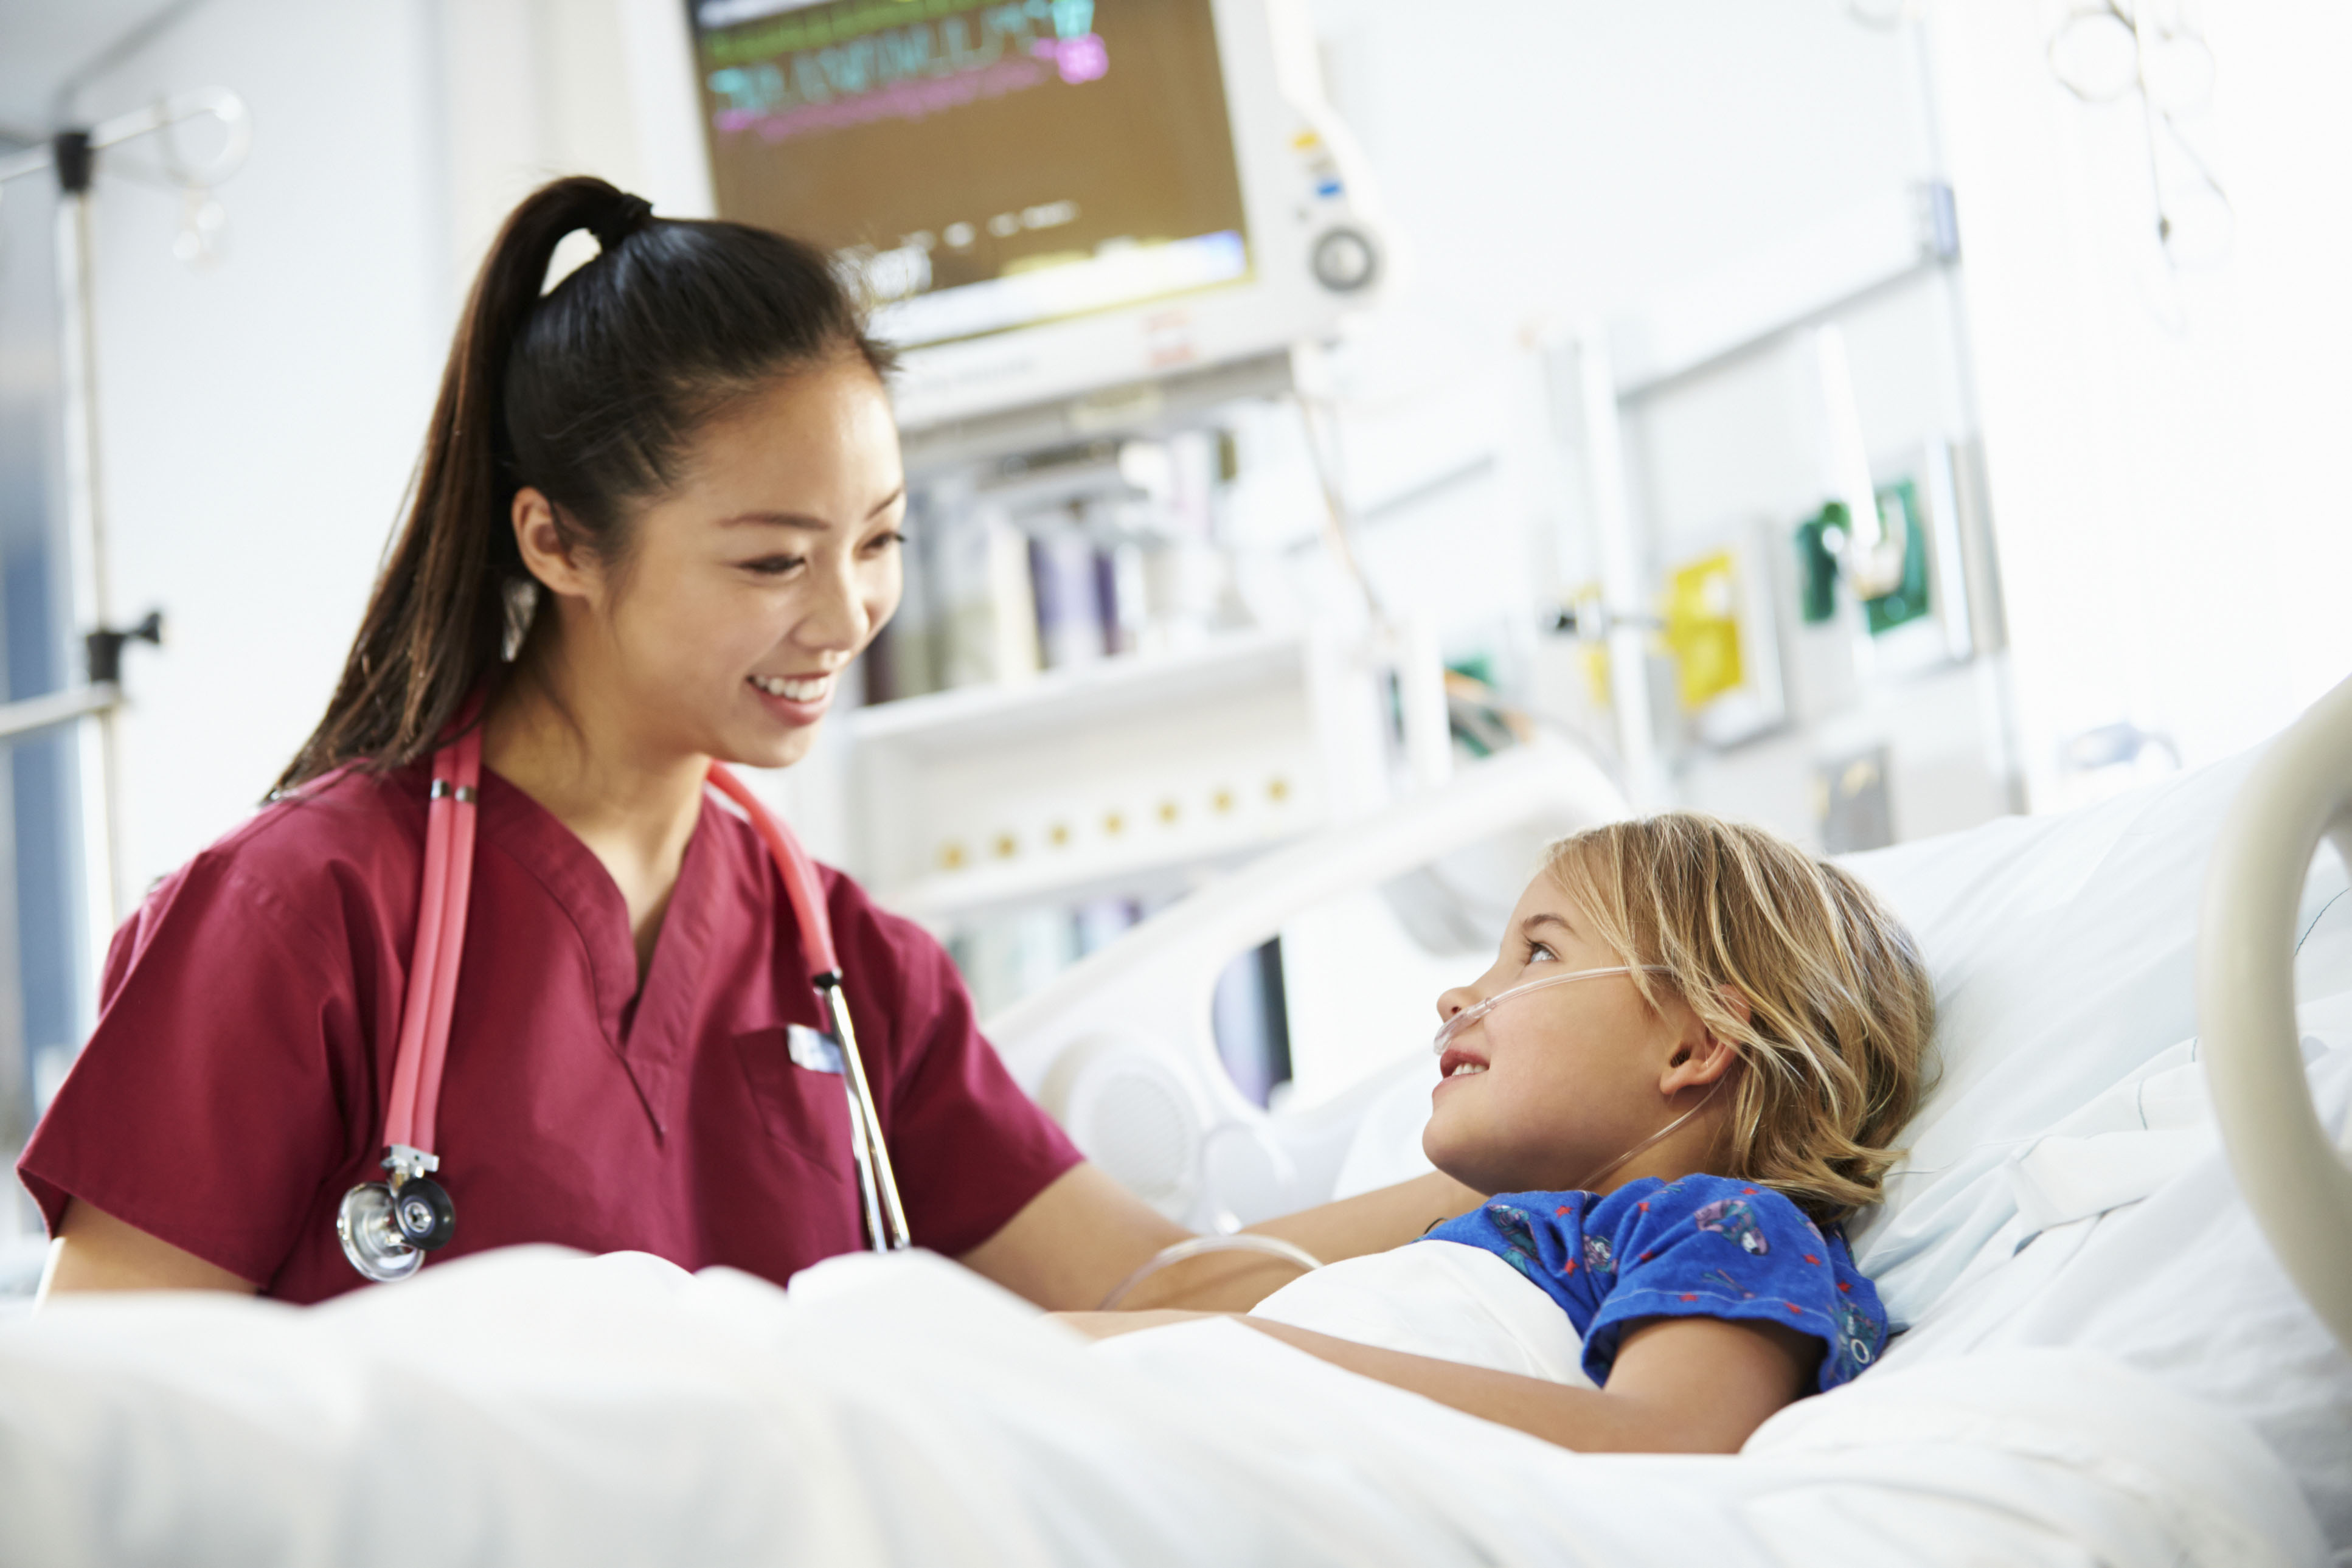 A registered nurse attending to a child - It is one of the best jobs that doesn't require a degree that pays good money